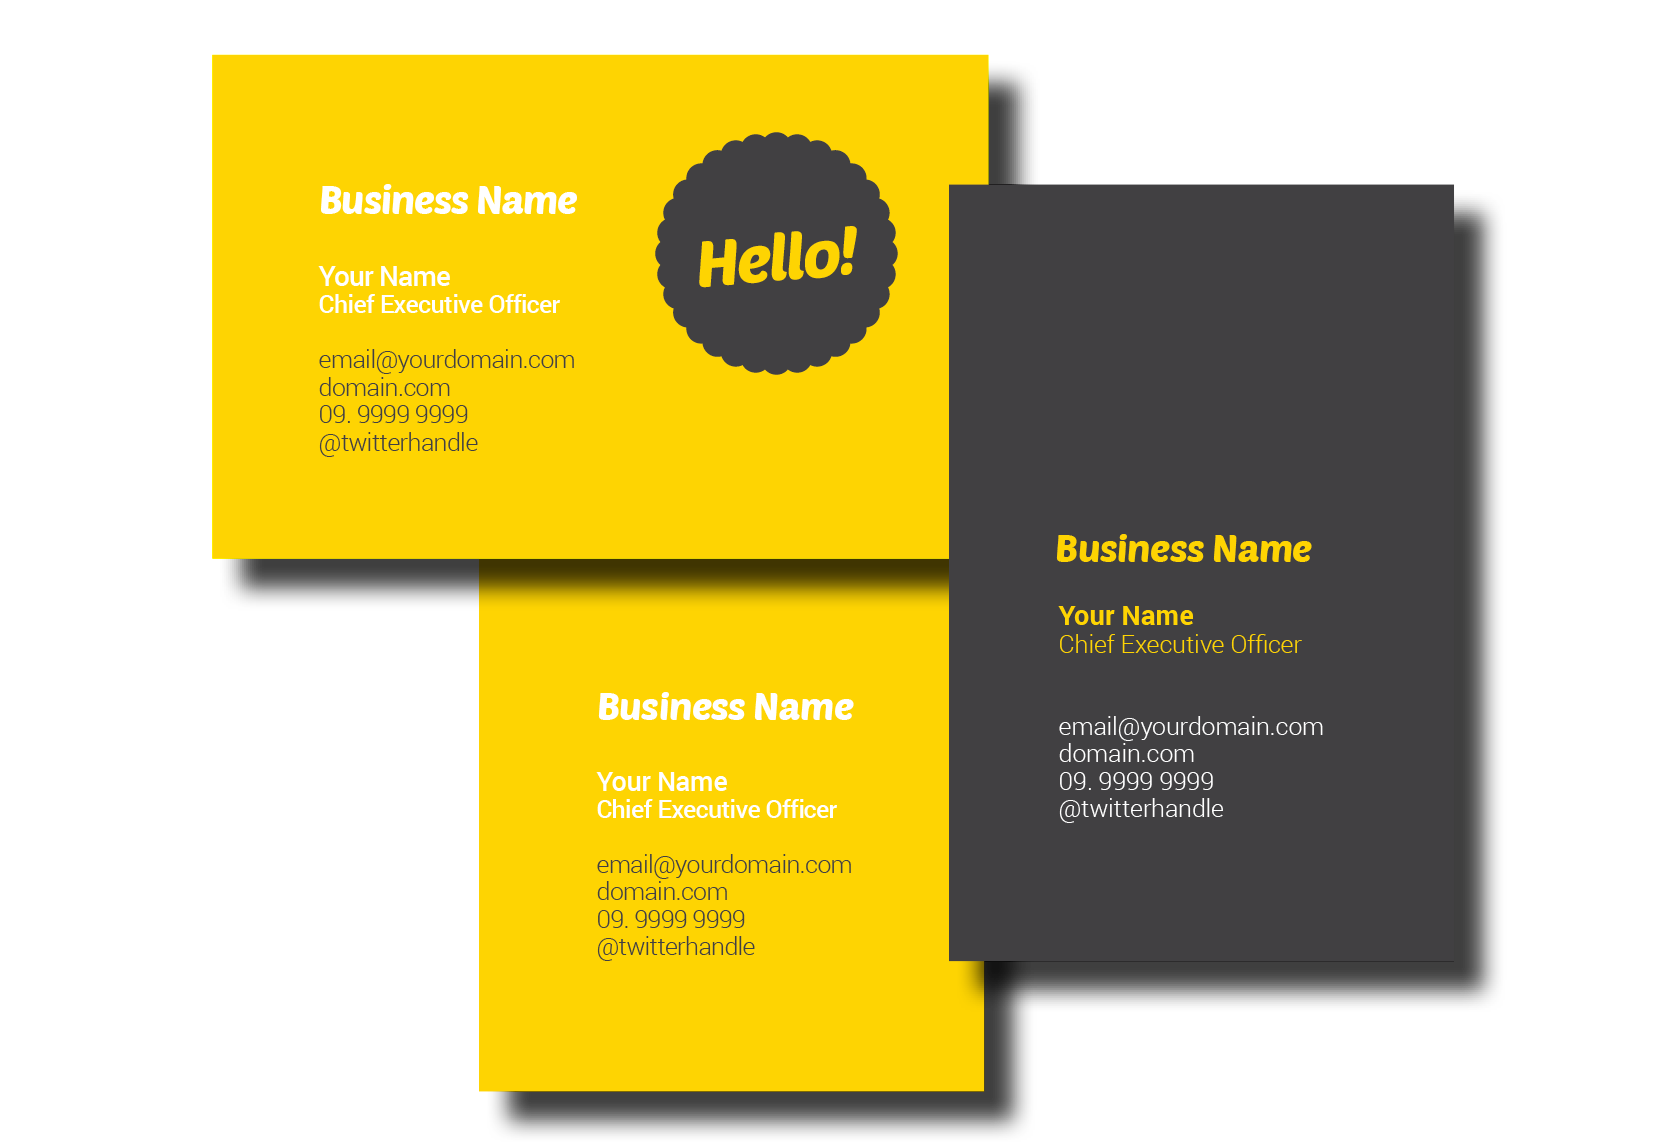 Business Cards, Dunedin Print, 297 Vogel Street, Dunedin